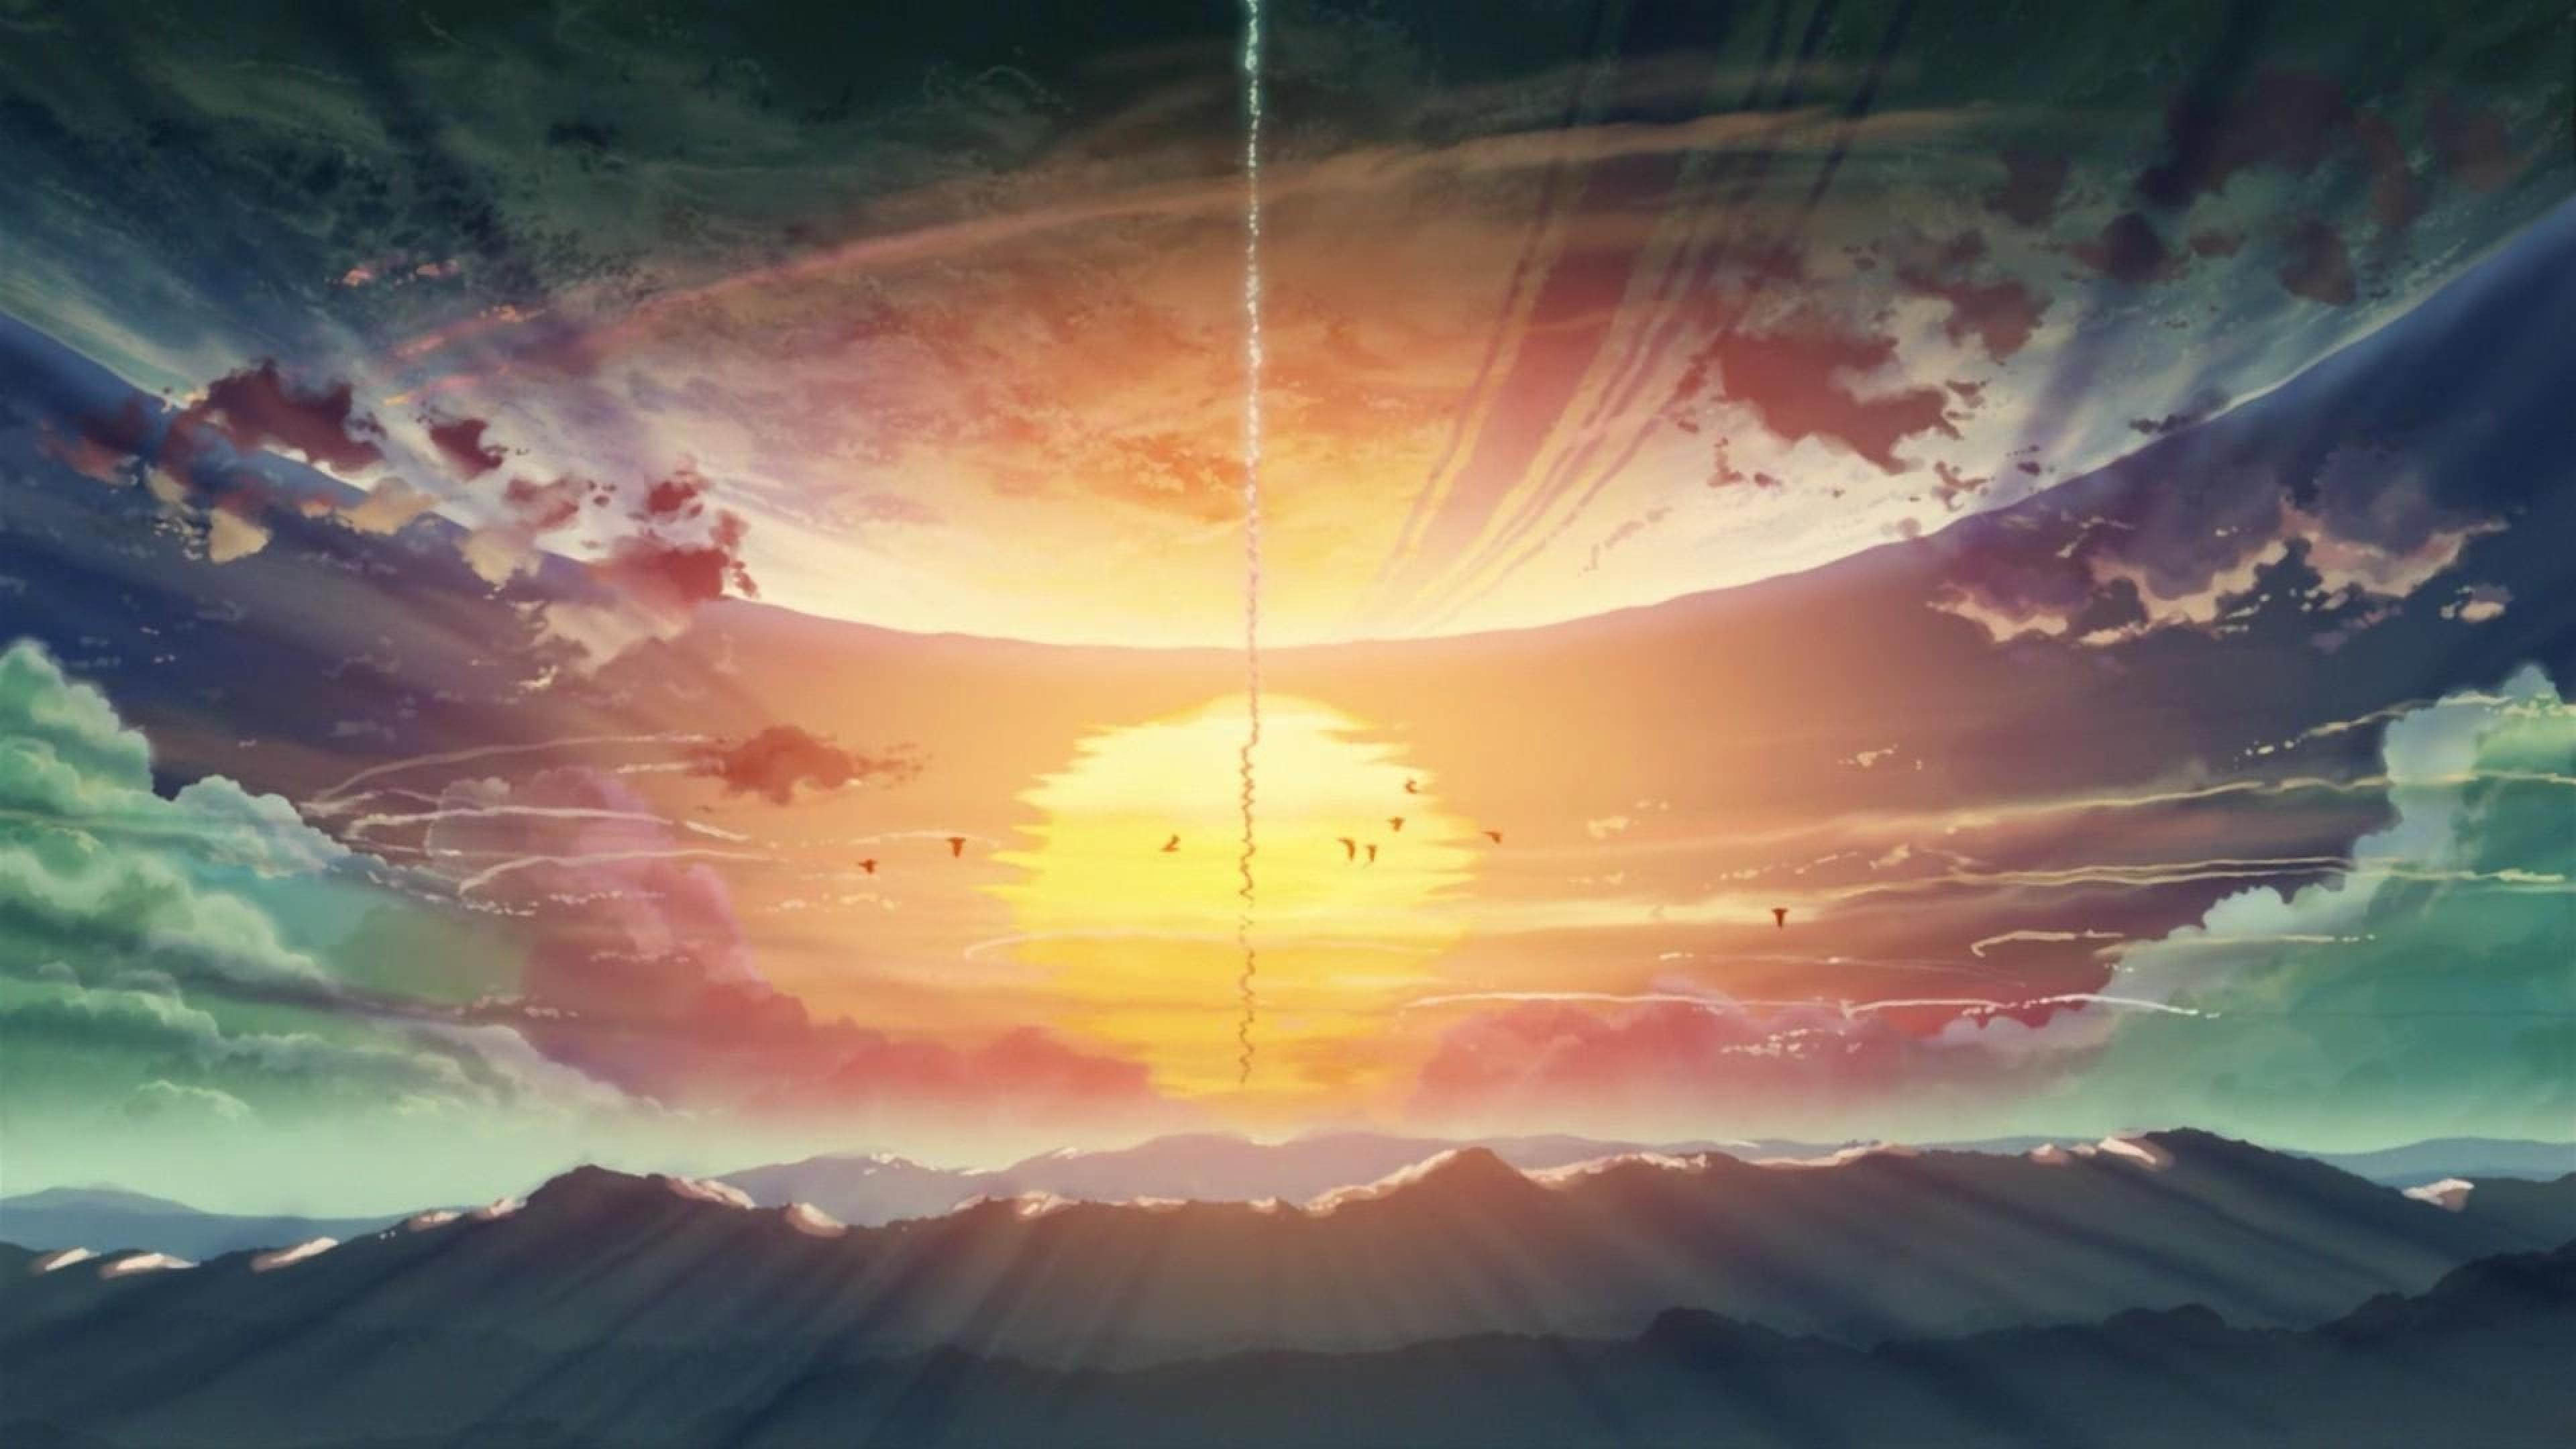 Photos 5 Centimeters Per Second Hd Hd Wallpapers High - 5 Centimeter Per Second Hd , HD Wallpaper & Backgrounds